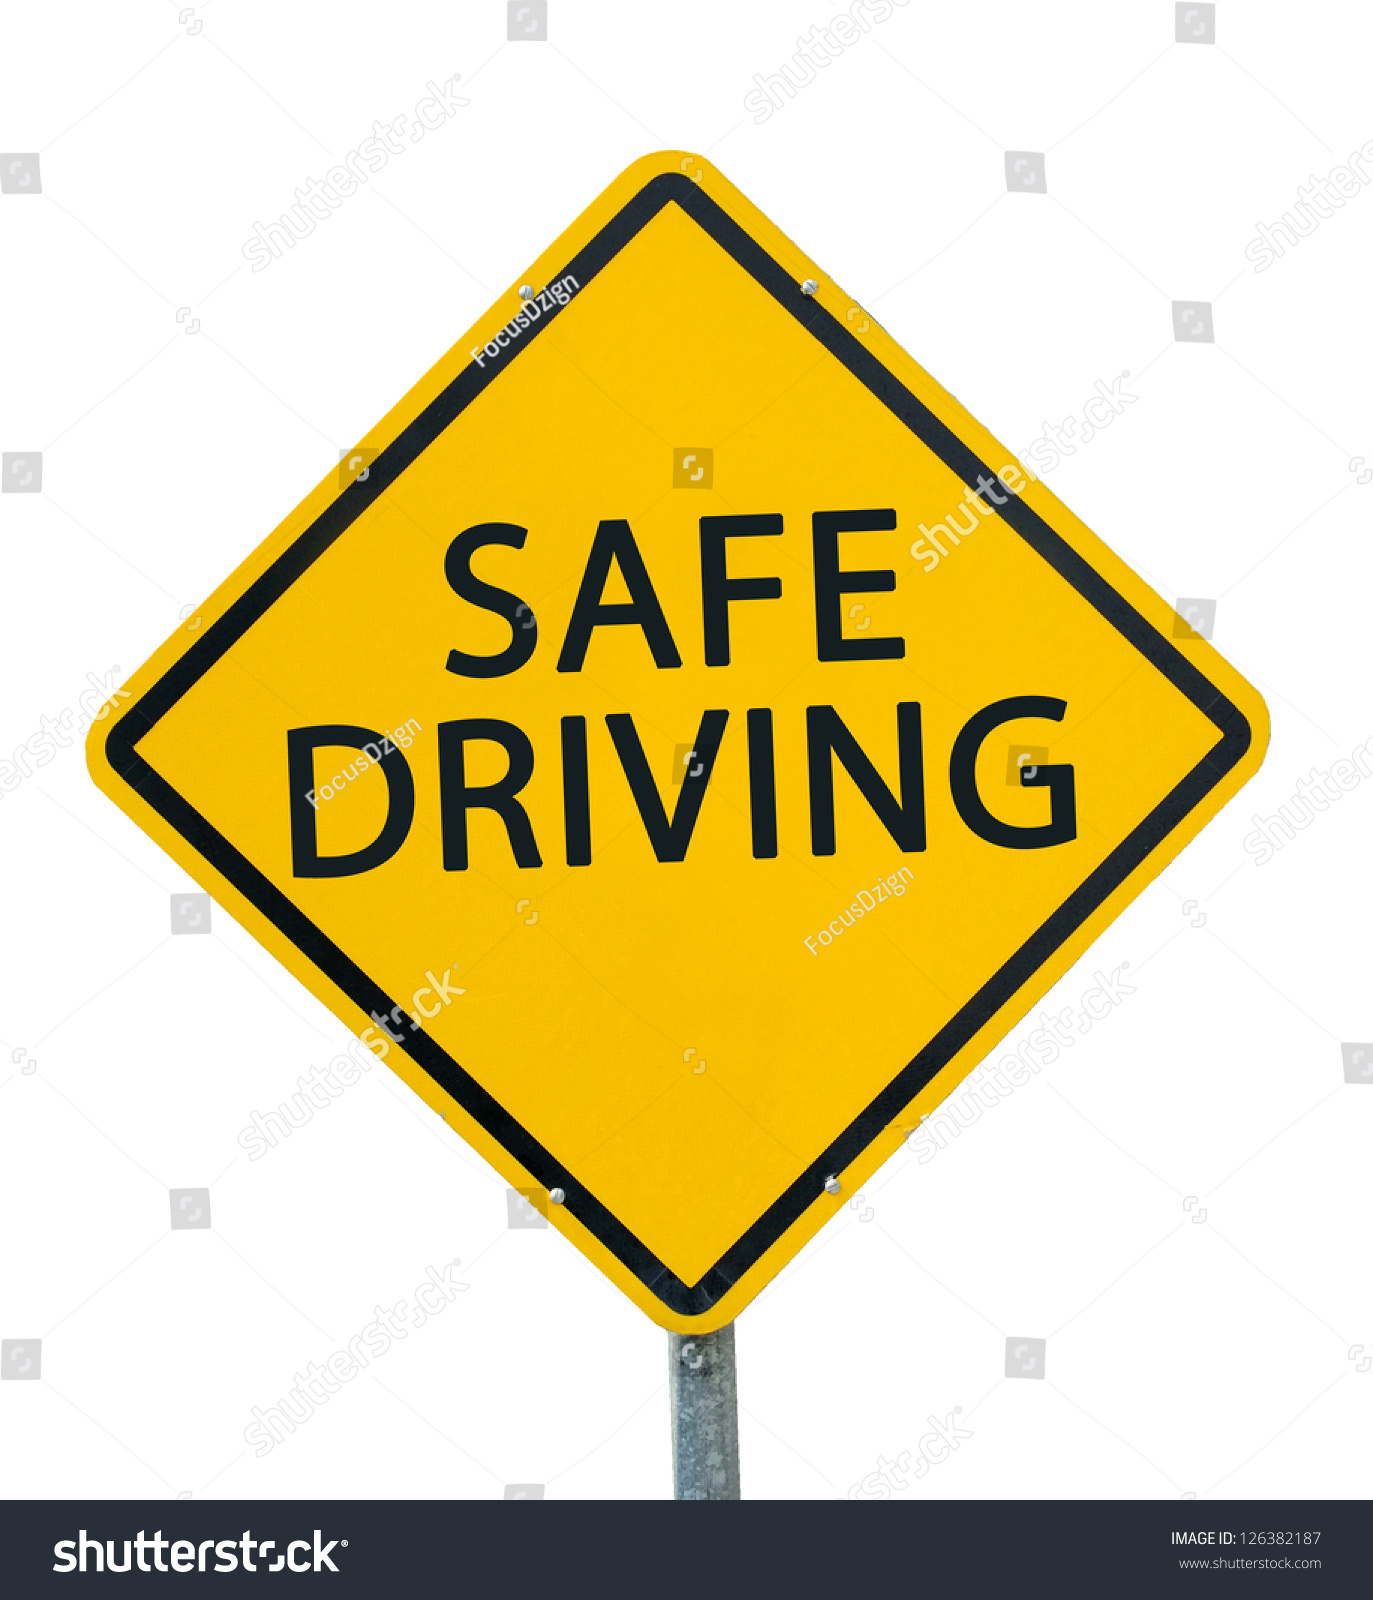 Safe Teen Driving Sign In  Cute Blonde Woman. Wisconsin Sr22 Insurance Tampa Job Recruiters. Quotes On Self Control Dentist In Longwood Fl. Duquesne University Graduate Programs. Financial Planning Spreadsheet. Garfield Ridge Dentistry Spanish Verb Trainer. Cost To Reverse A Vasectomy Remove Irs Lien. Non Med Life Insurance Title Max Rock Hill Sc. Best College For Political Science